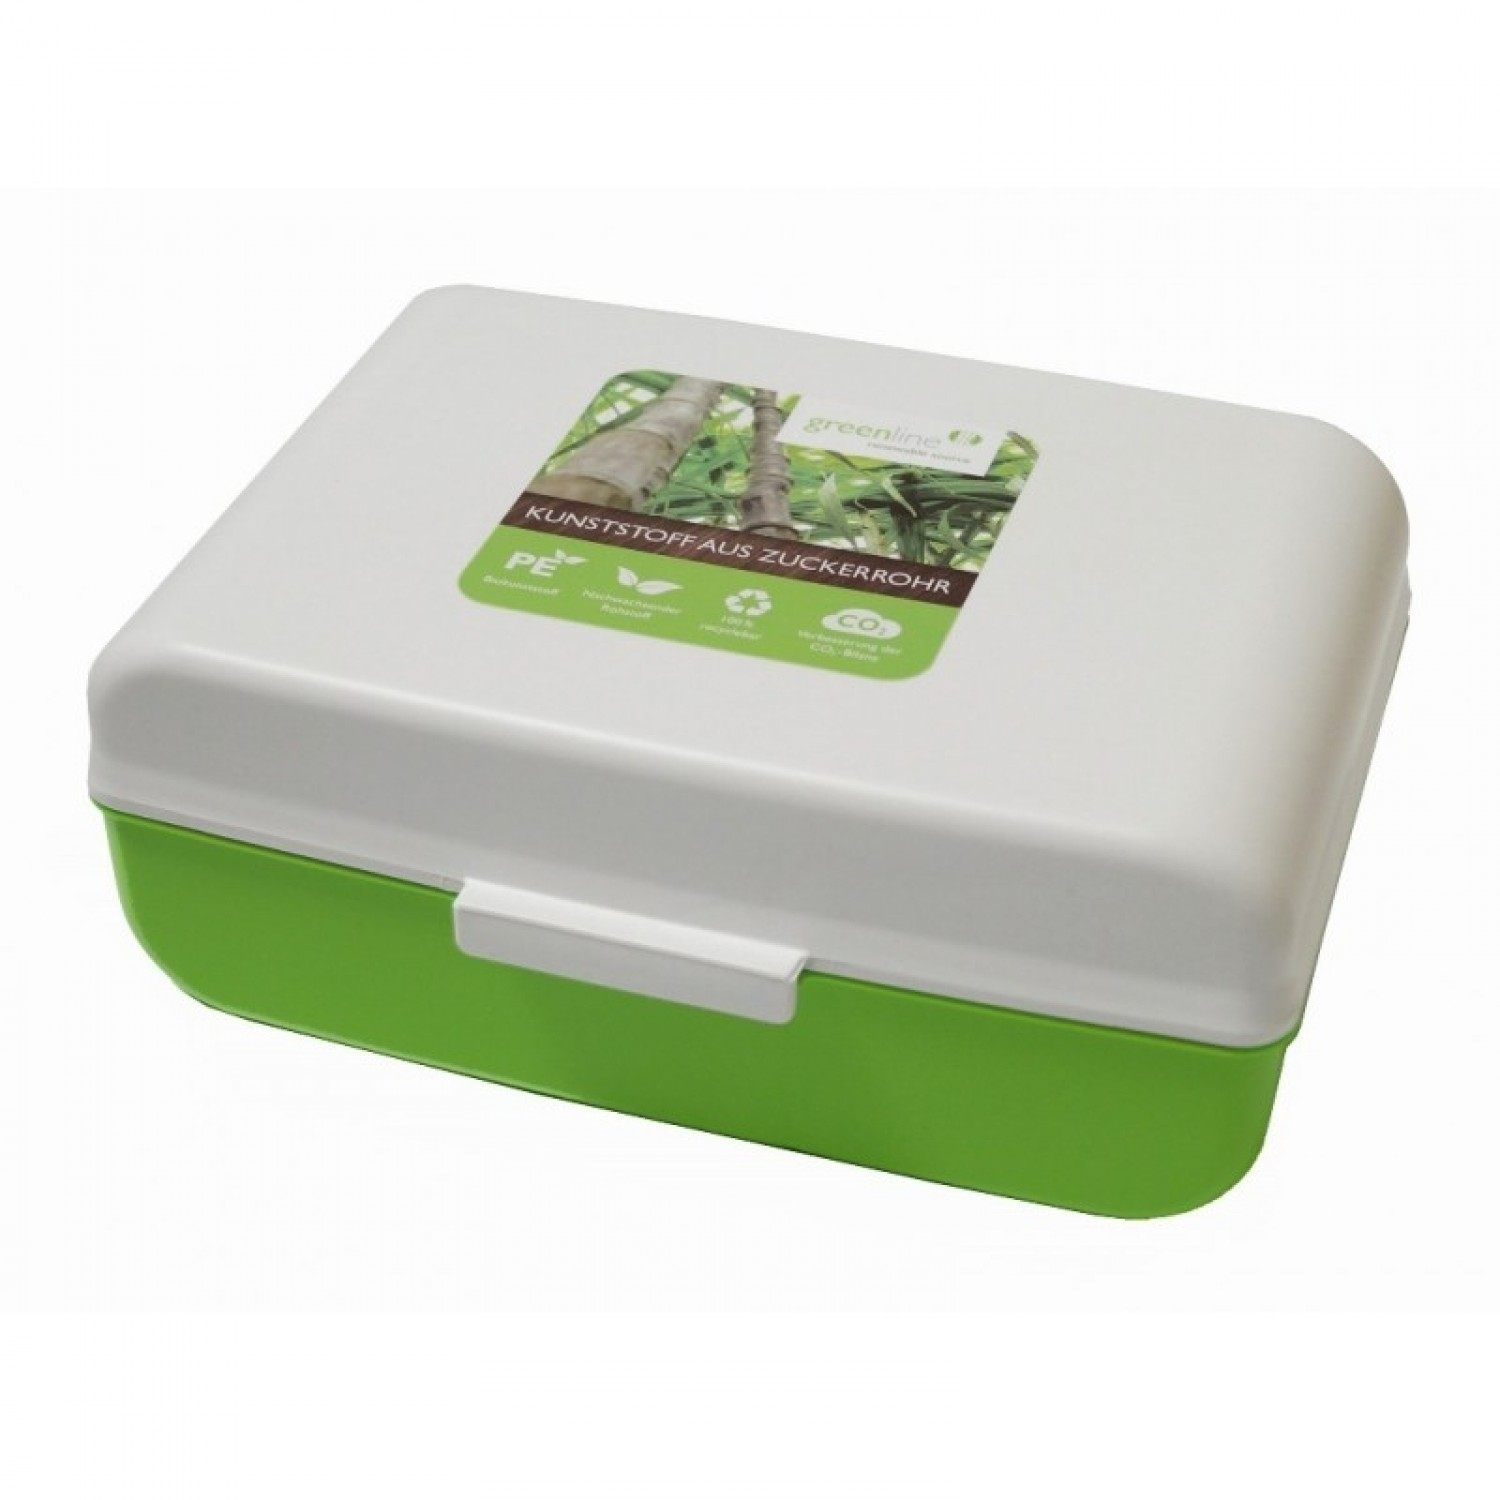 Gies ecoline Lunchbox with separation, eco bento box | Greenpicks